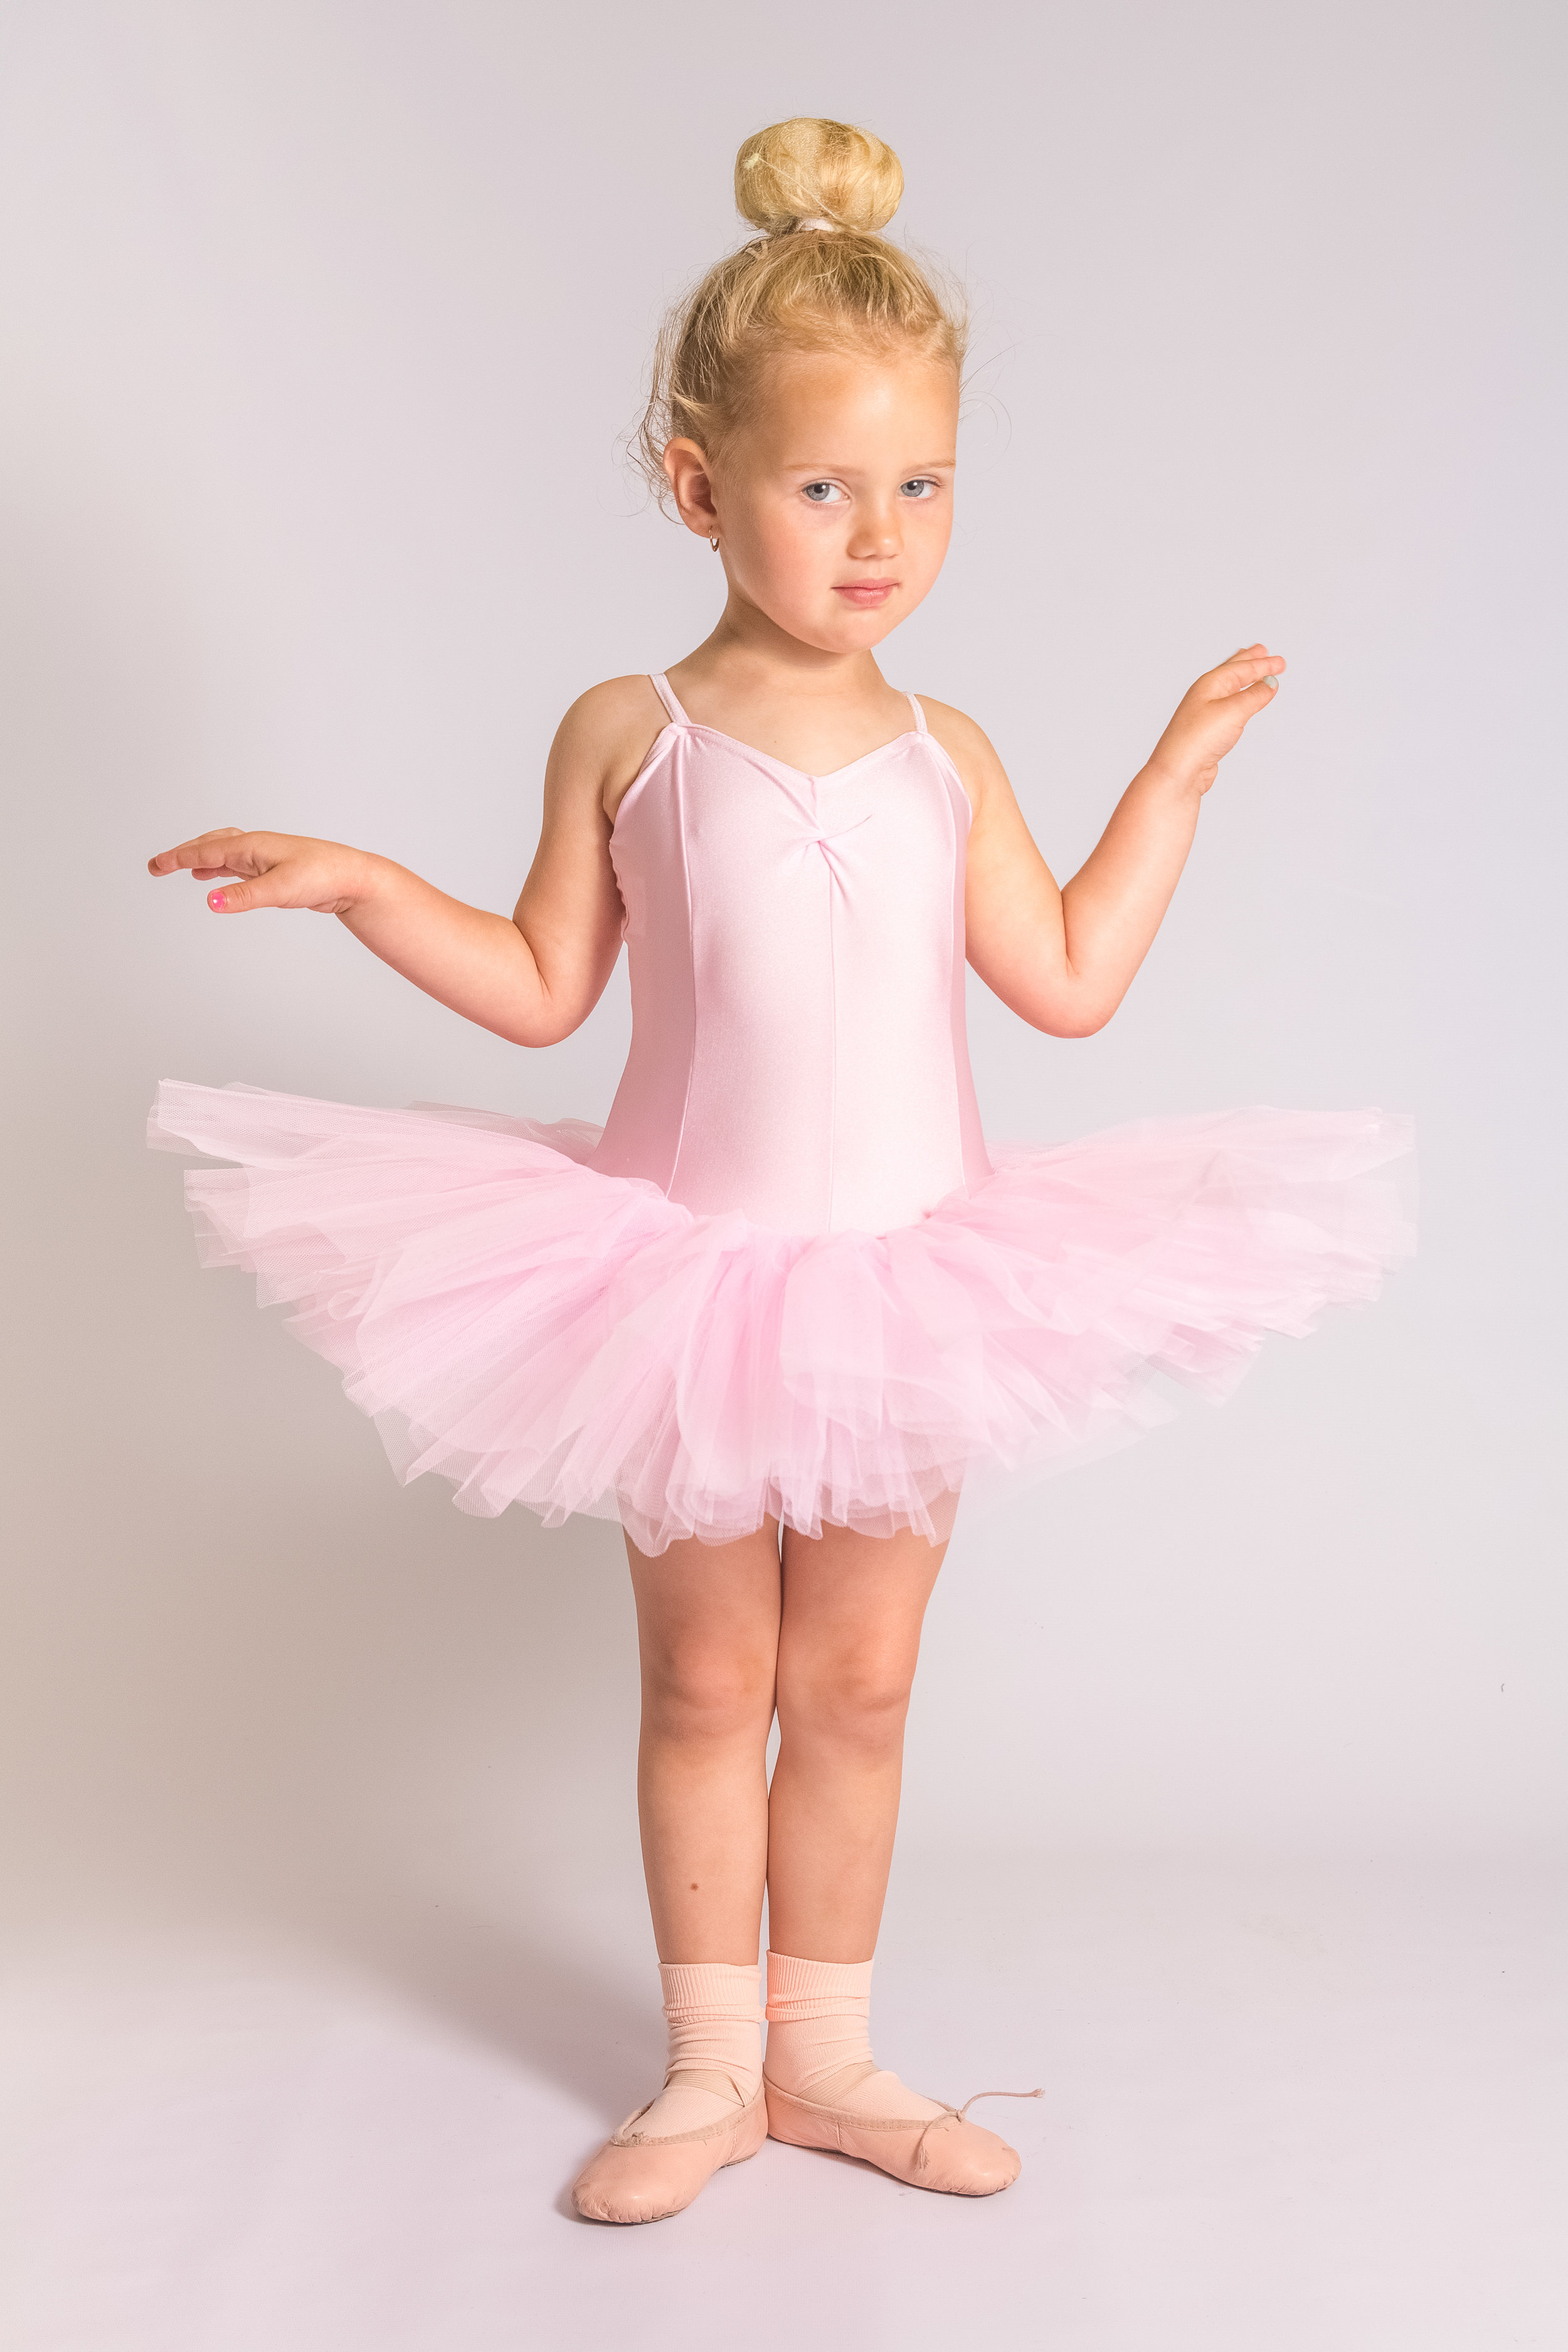 dance school crewe nantwich cheshire photo photography tutu pink dancers